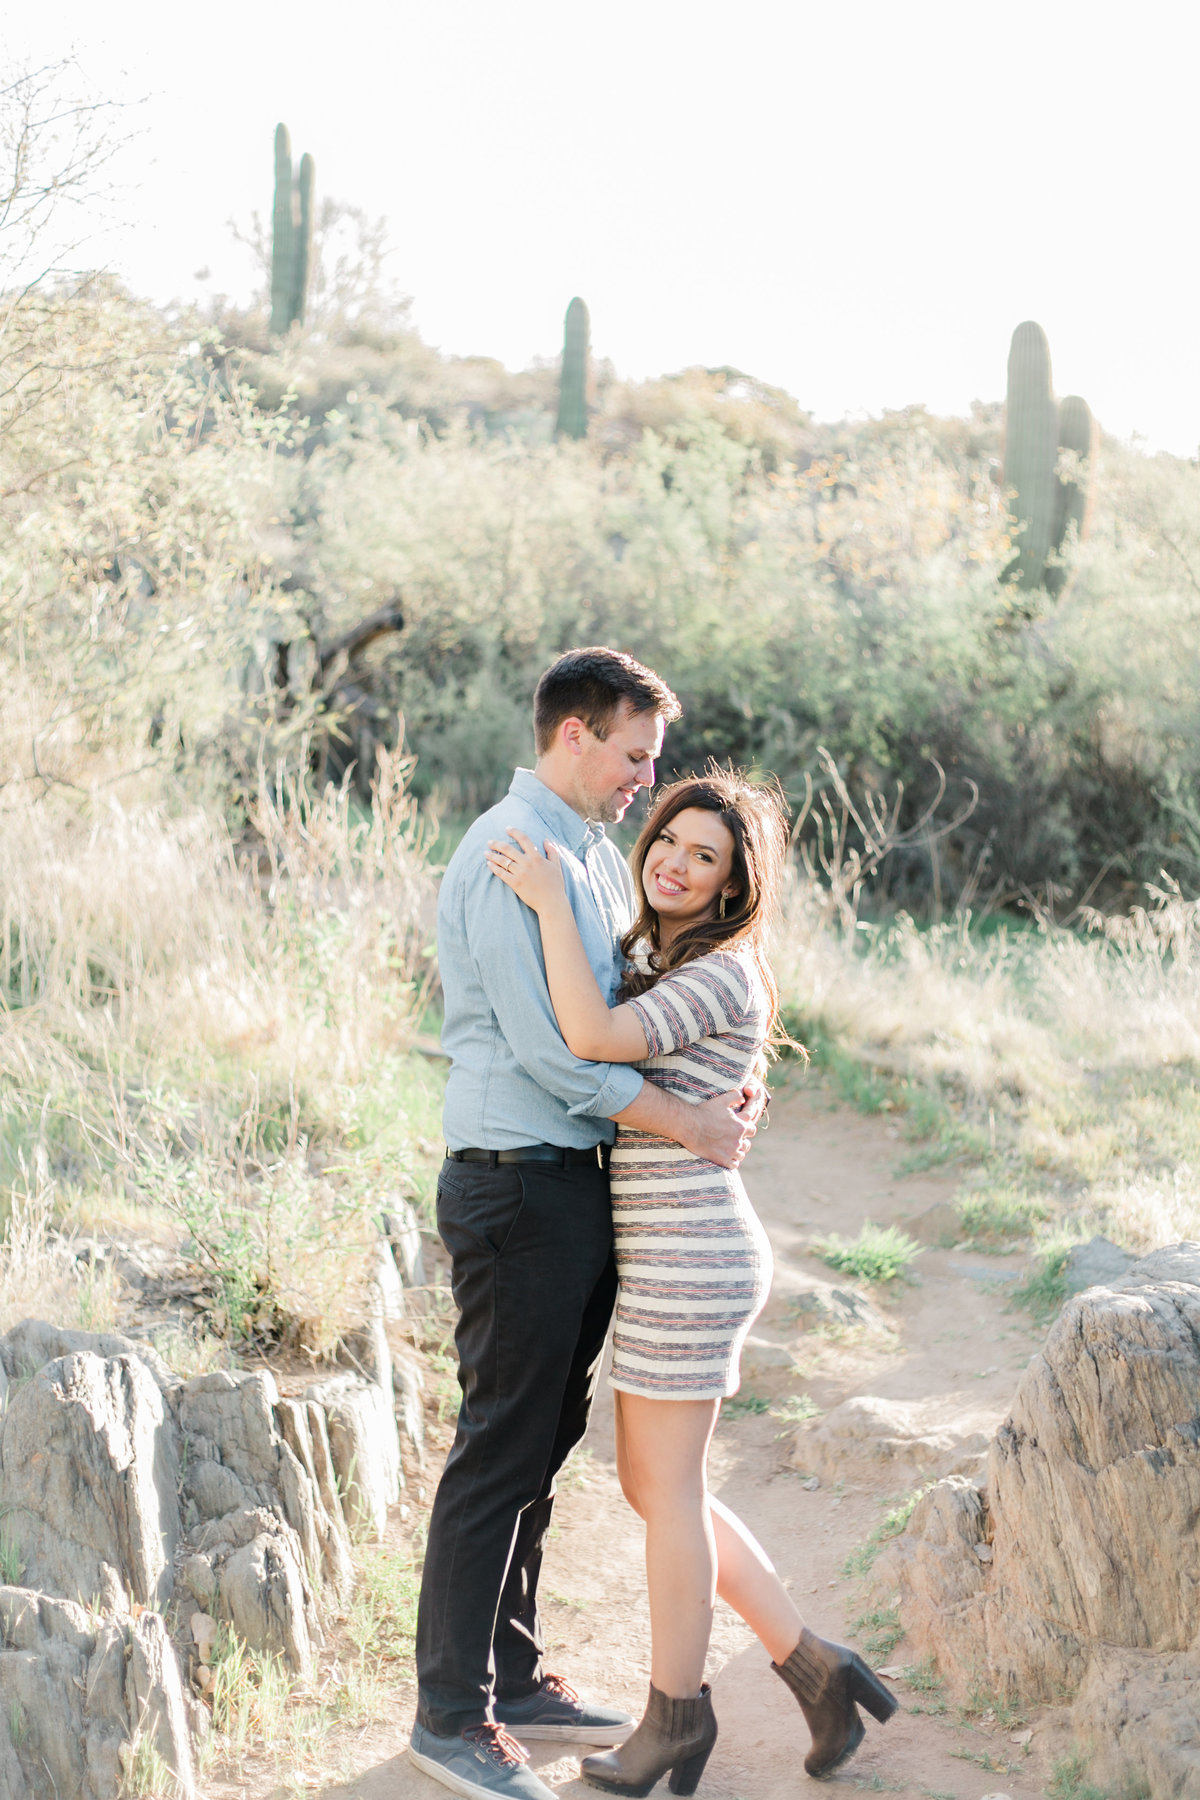 Karlie Colleen Photography - Claire & PJ - Engagement Session-193